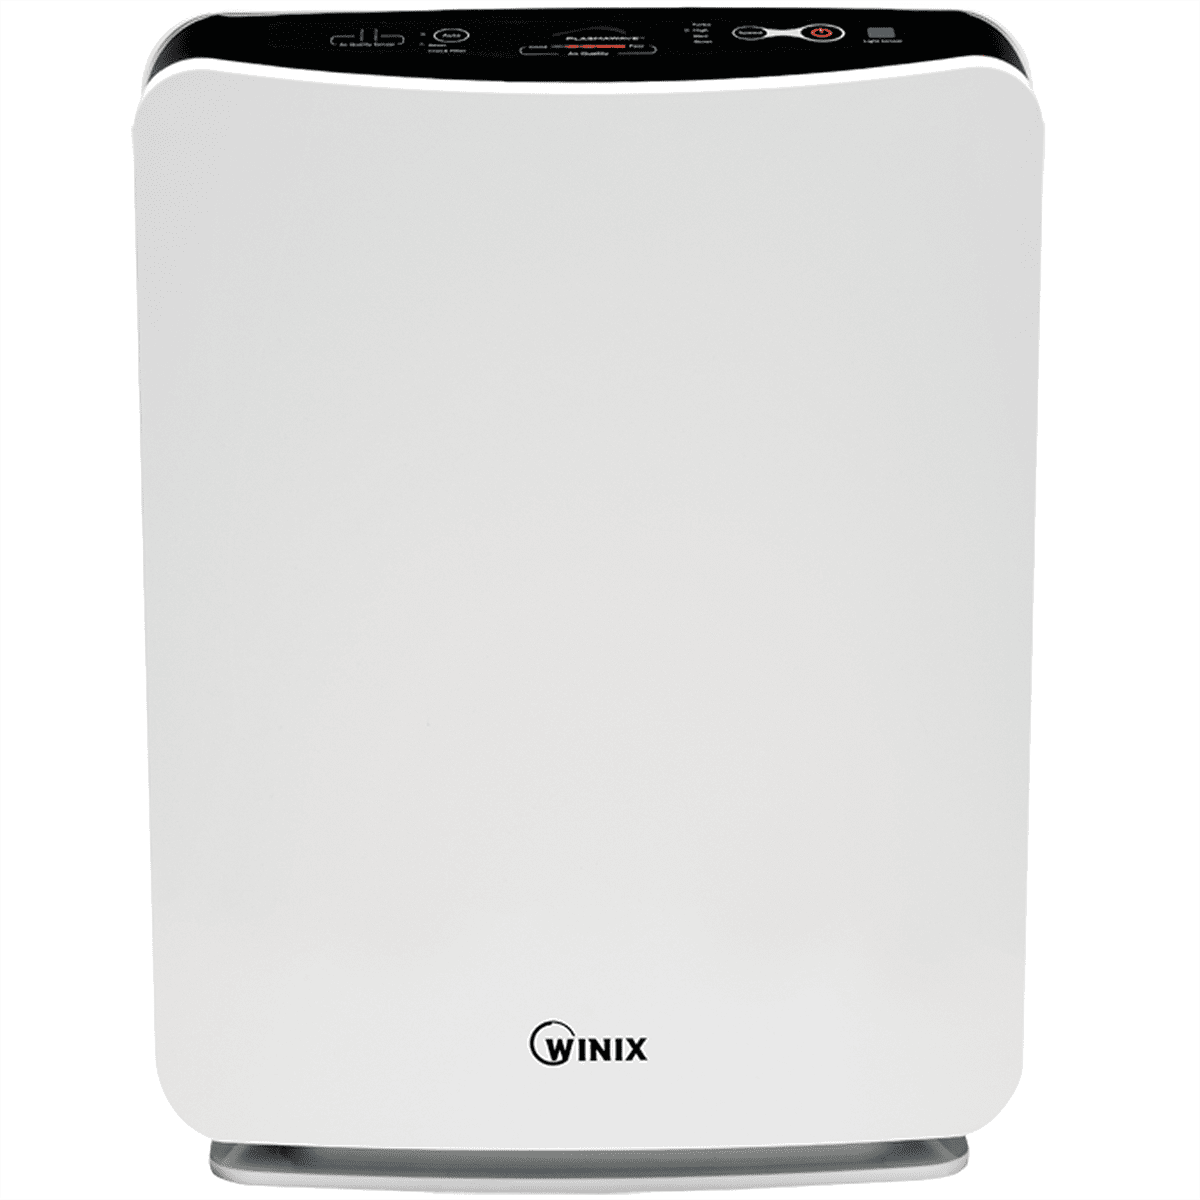 Winix P150 FresHome HEPA Air Cleaner with PlasmaWave Technology wi3085